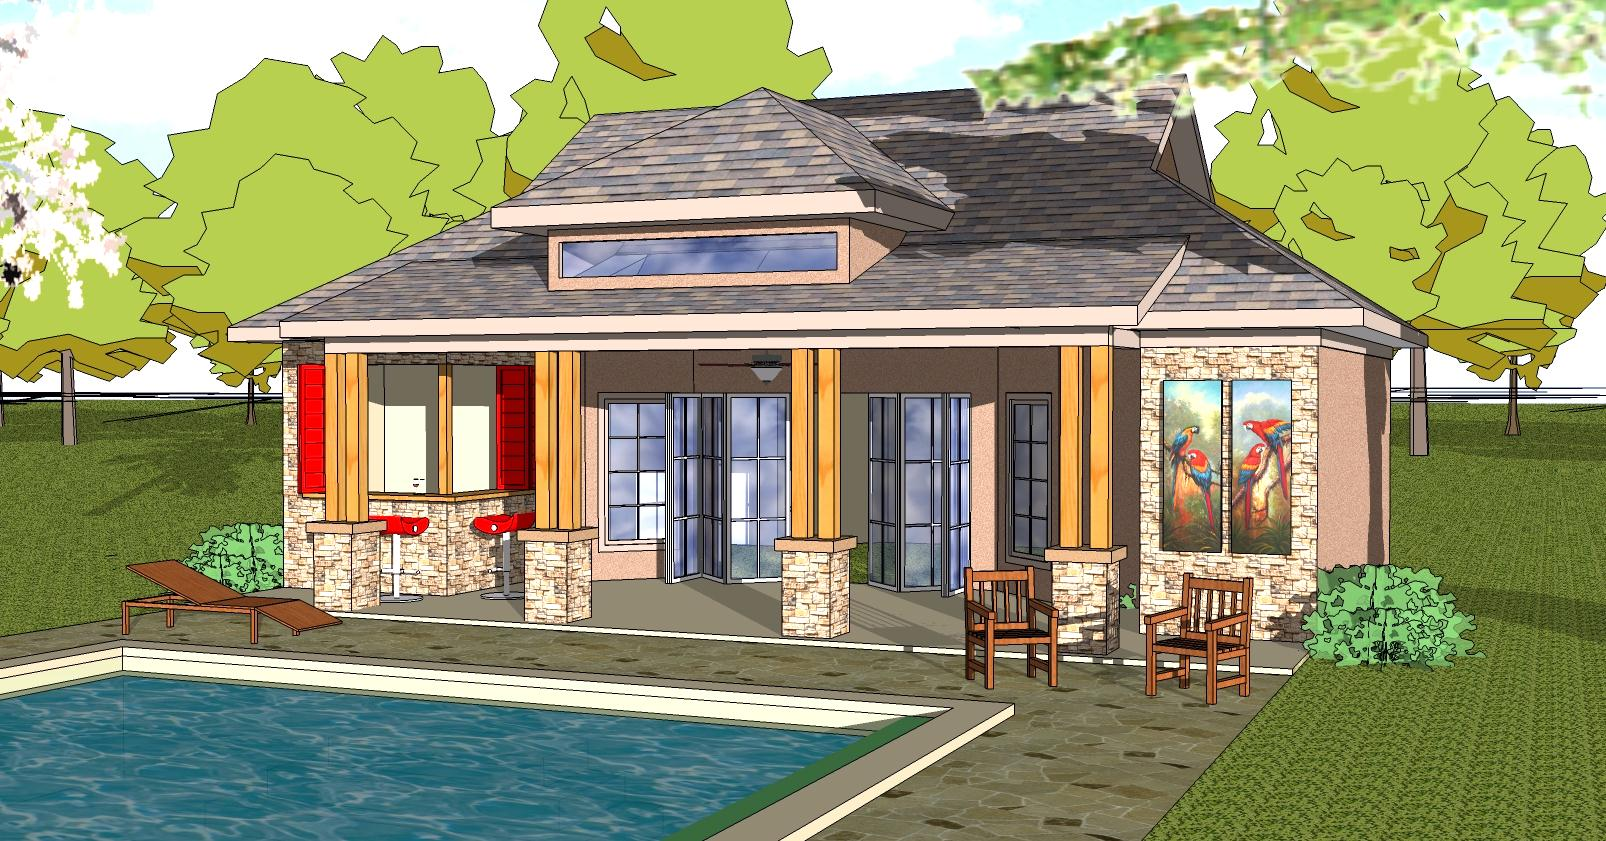 Vacation Homes House Plan #155-1012: 1 Bedrm, 701 Sq Ft